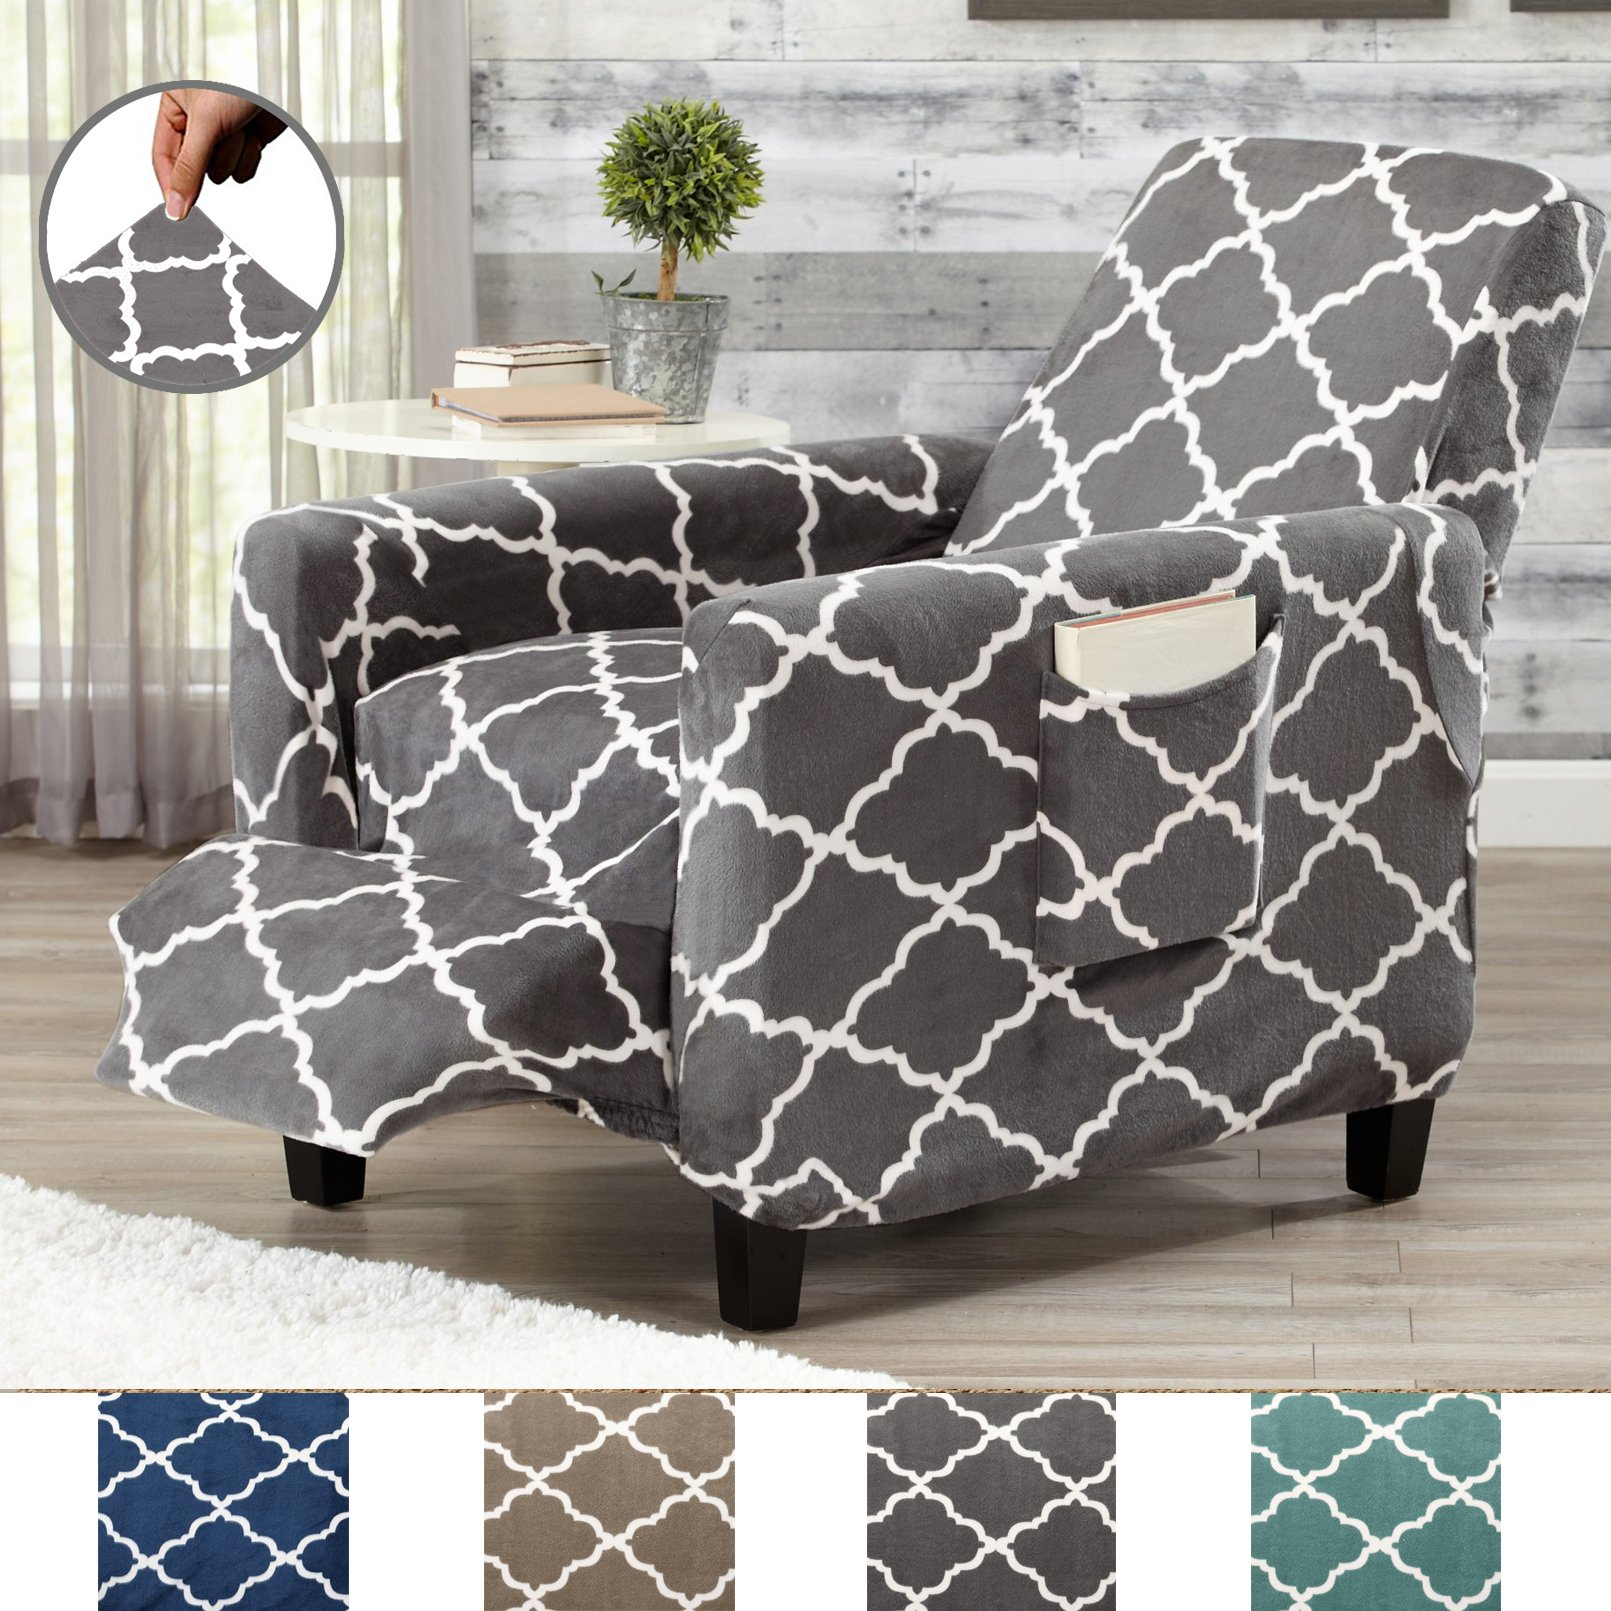 Great Bay Home Modern Velvet Plush Strapless Slipcover. Form Fit Stretch, Stylish Furniture Shield/Protector. Magnolia Collection Strapless Slipcover by Brand. (Recliner, Grey) by Great Bay Home